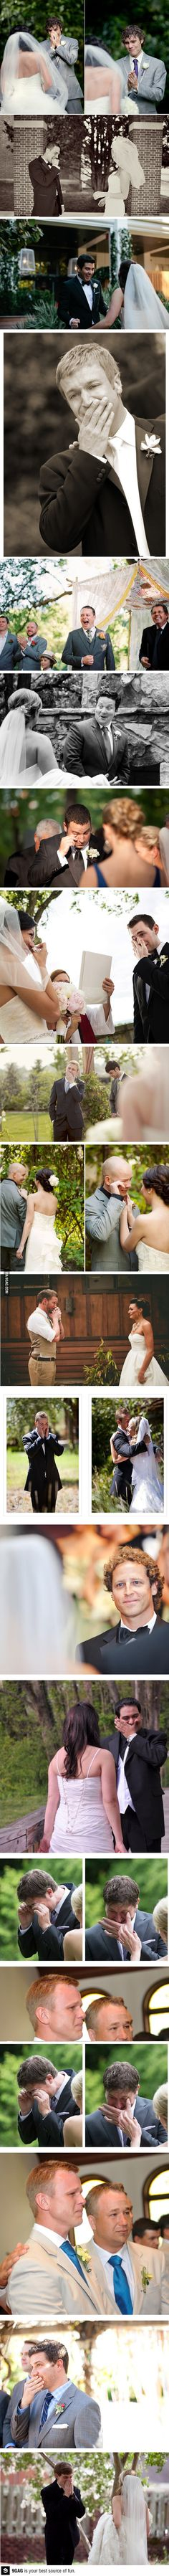 The groom sees his bride in a wedding dress for the first time...